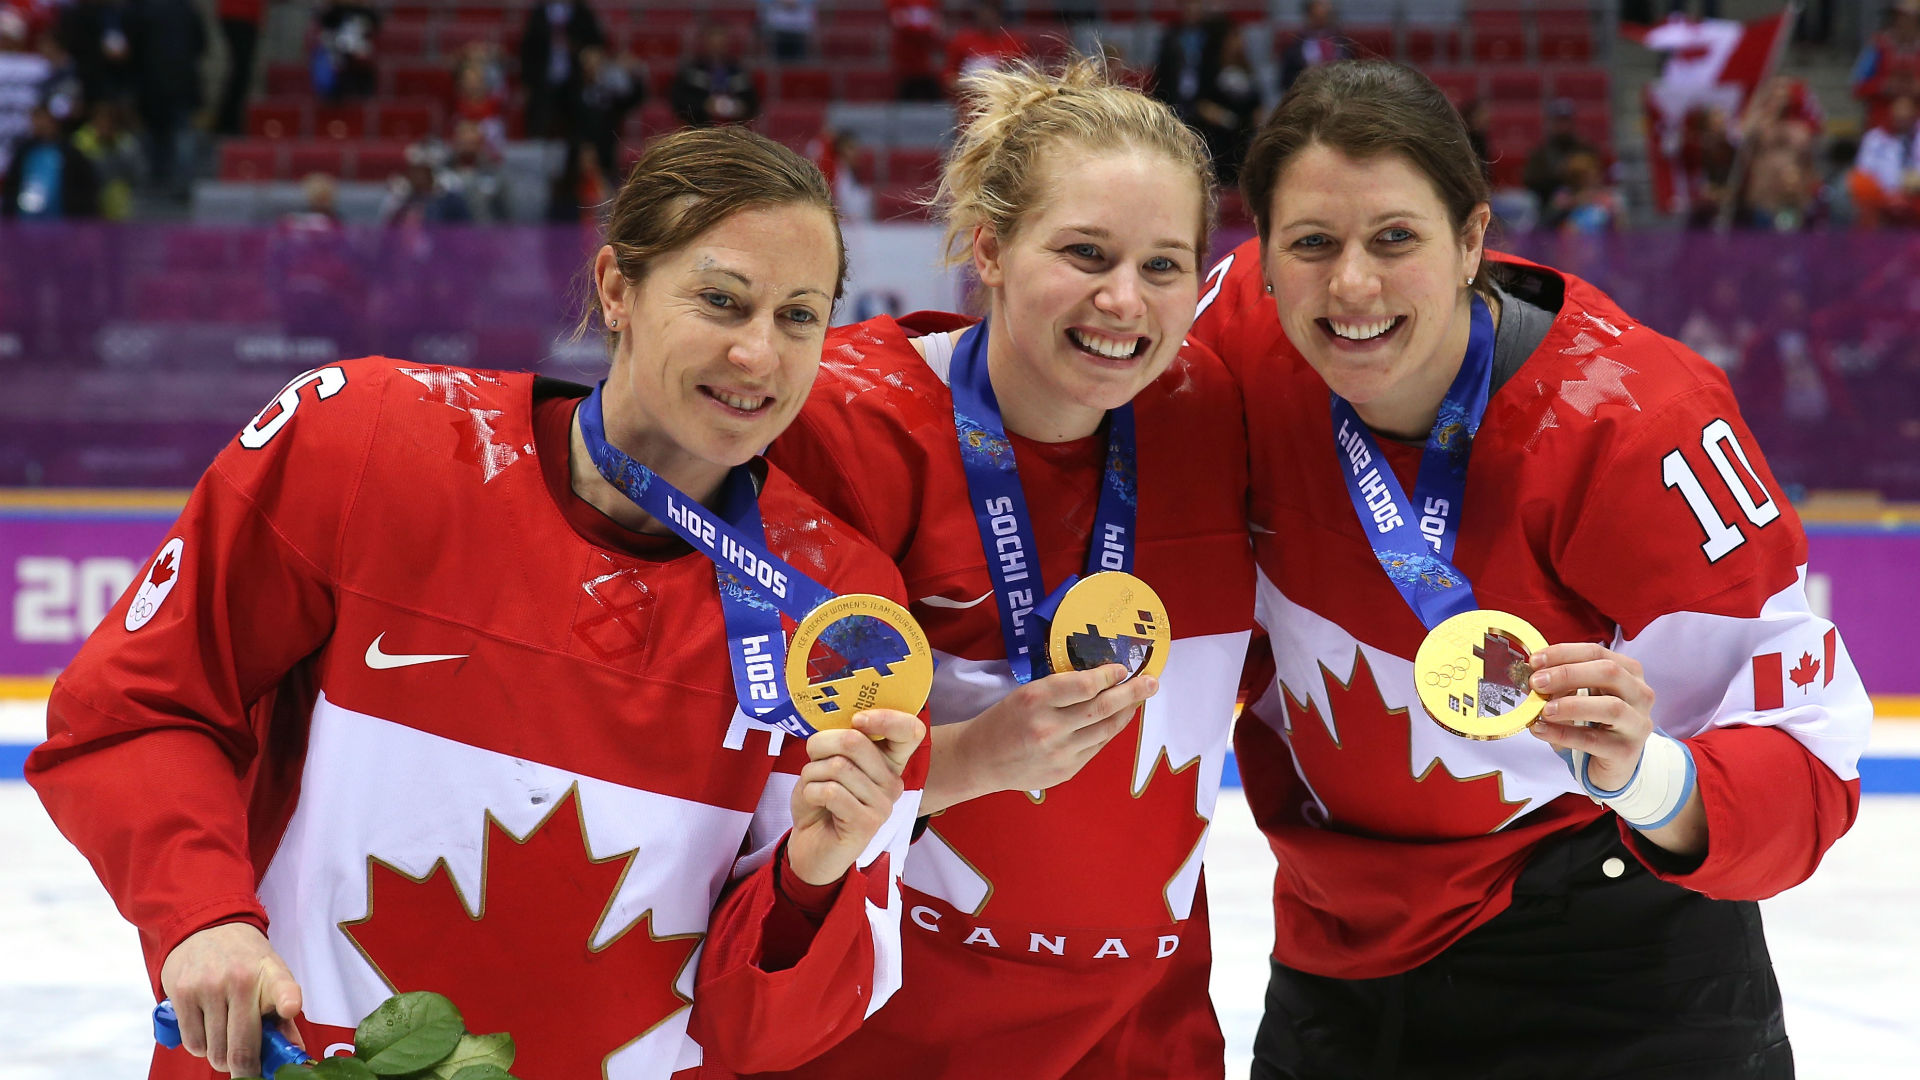 Watch Jayna Hefford video